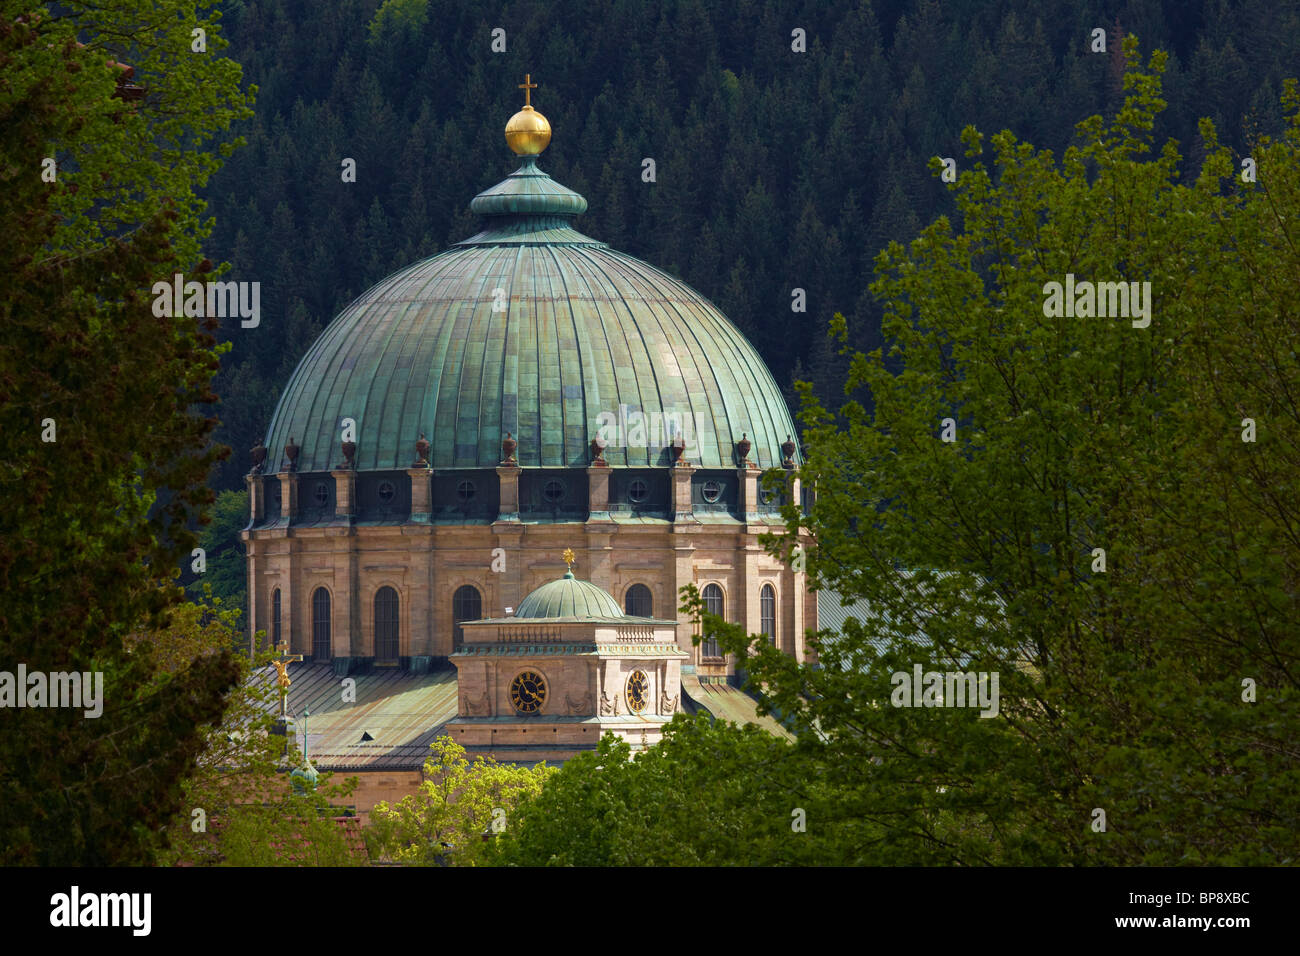 St. Blasien monastery, Cupola, On a spring's day, Black Forest, Baden-Wuerttemberg, Germany, Europe - Stock Image